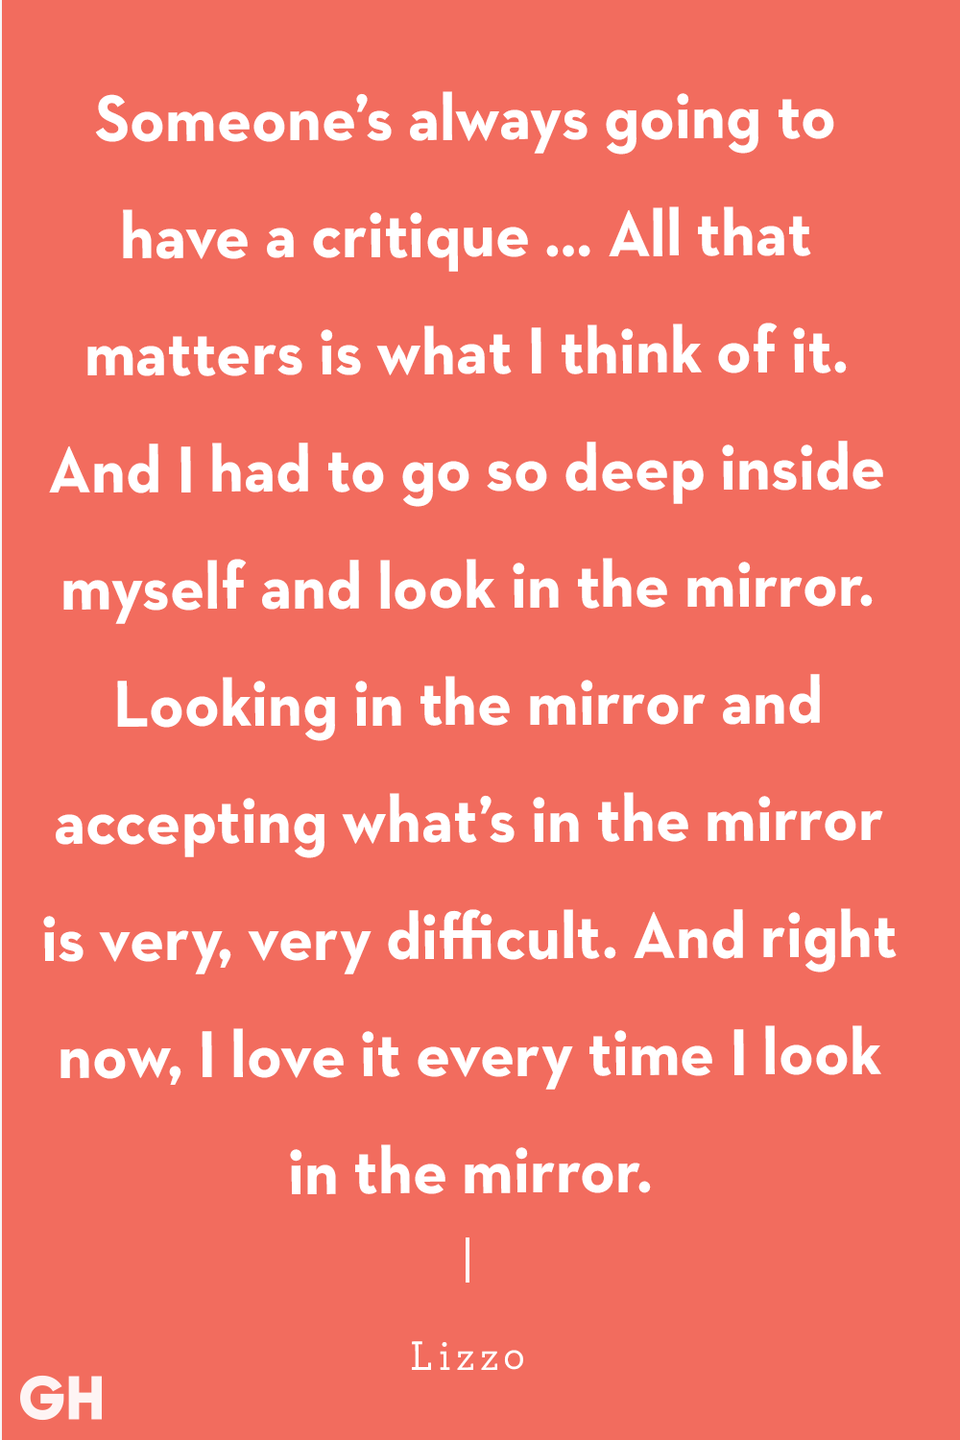 "<p>""Someone's always going to have a critique … All that matters is what I think of it. And I had to go so deep inside myself and look in the mirror. Looking in the mirror and accepting what's in the mirror is very, very difficult. And right now, I love it every time I look in the mirror."" </p>"